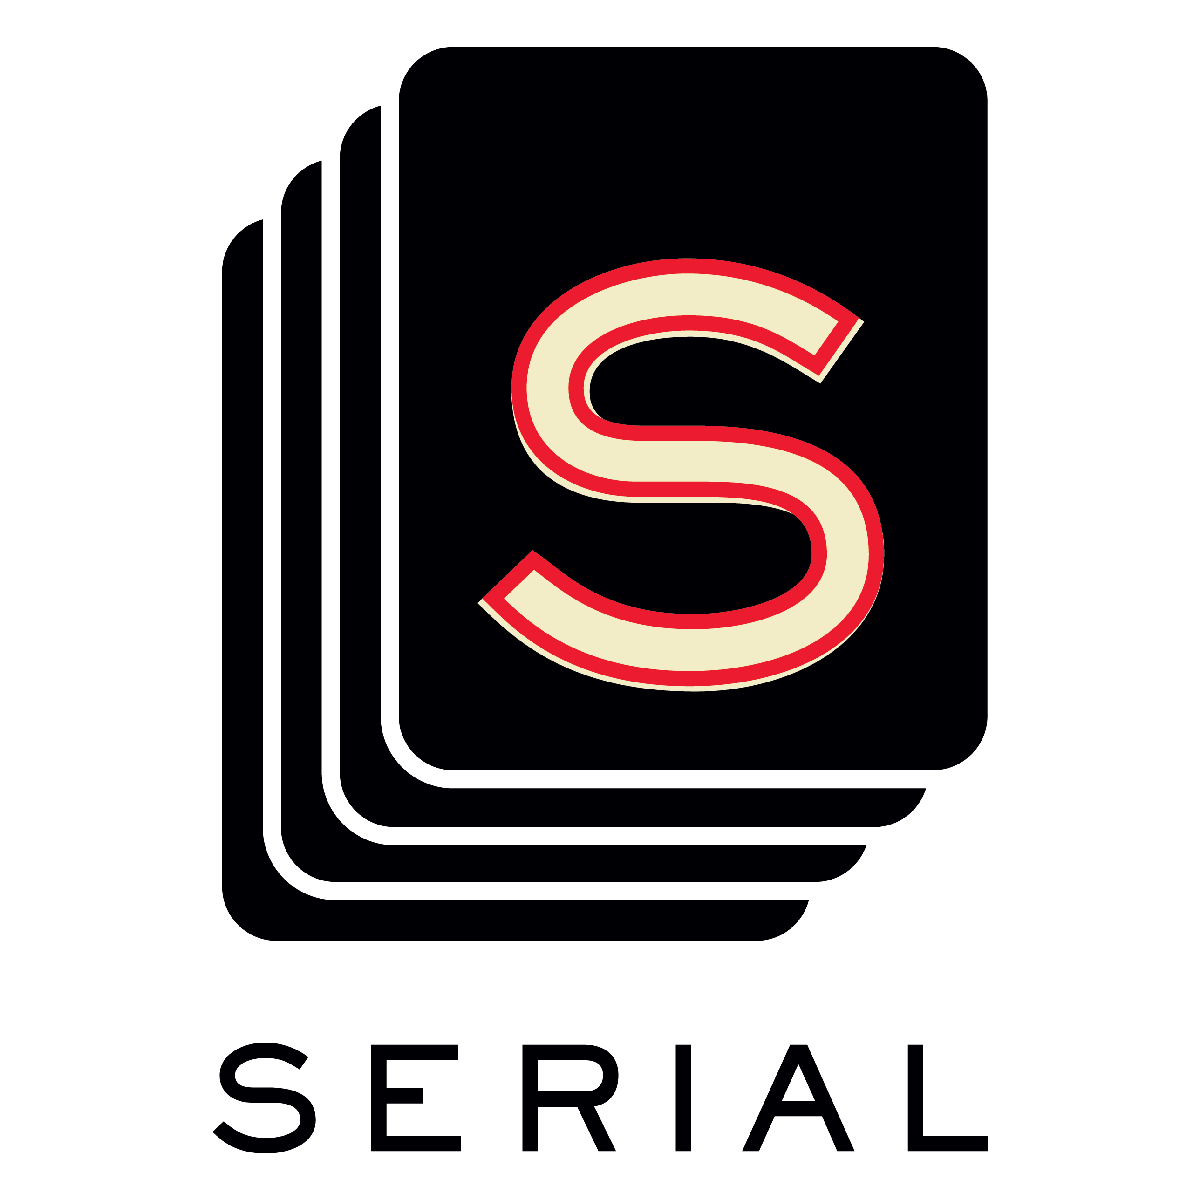 Come listen to Serial Thursday, December 18th!